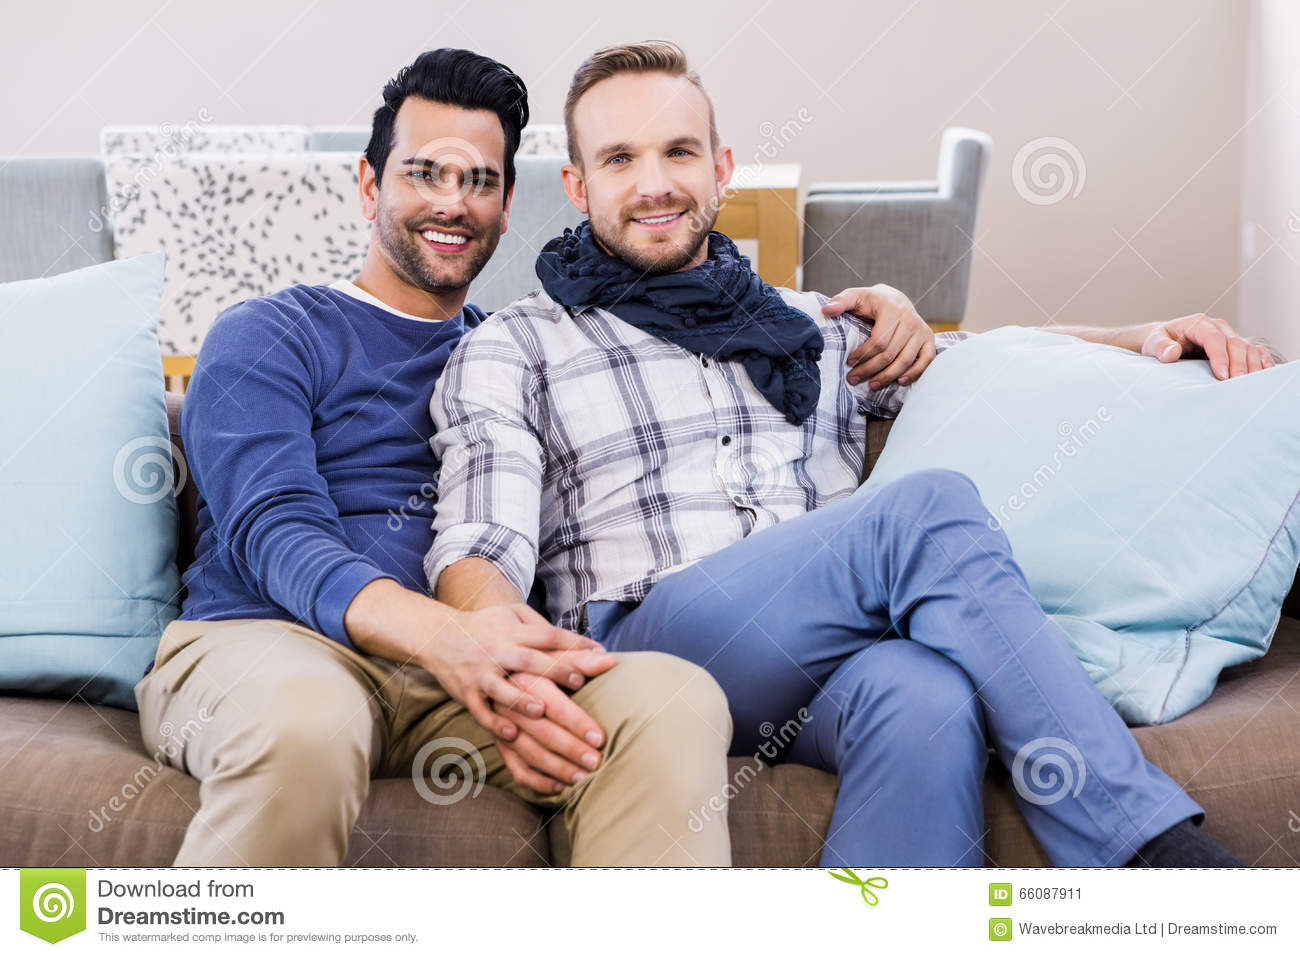 gay couple holding hands jpg 1500x1000